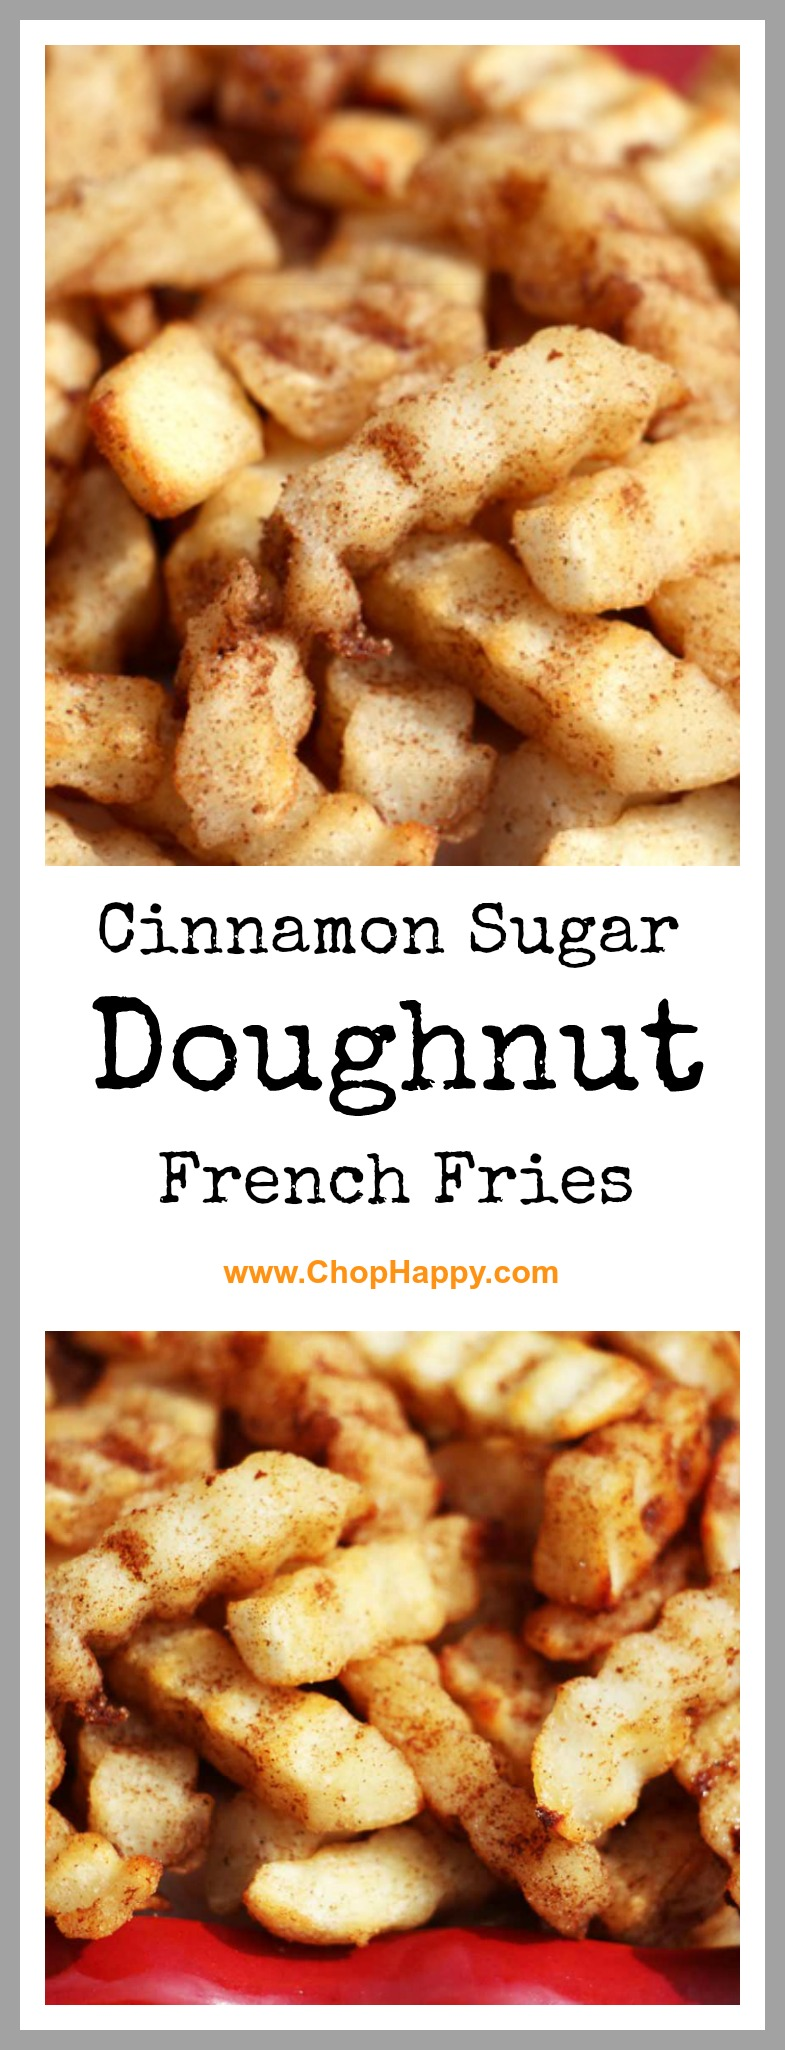 Cinnamon Sugar Doughnut French Fries Recipe - is french fries for dessert. If this is starchy, sweet, and sugary fun for everyone. Also it is super easy because you use store bought frozen fries. www.ChopHappy.com